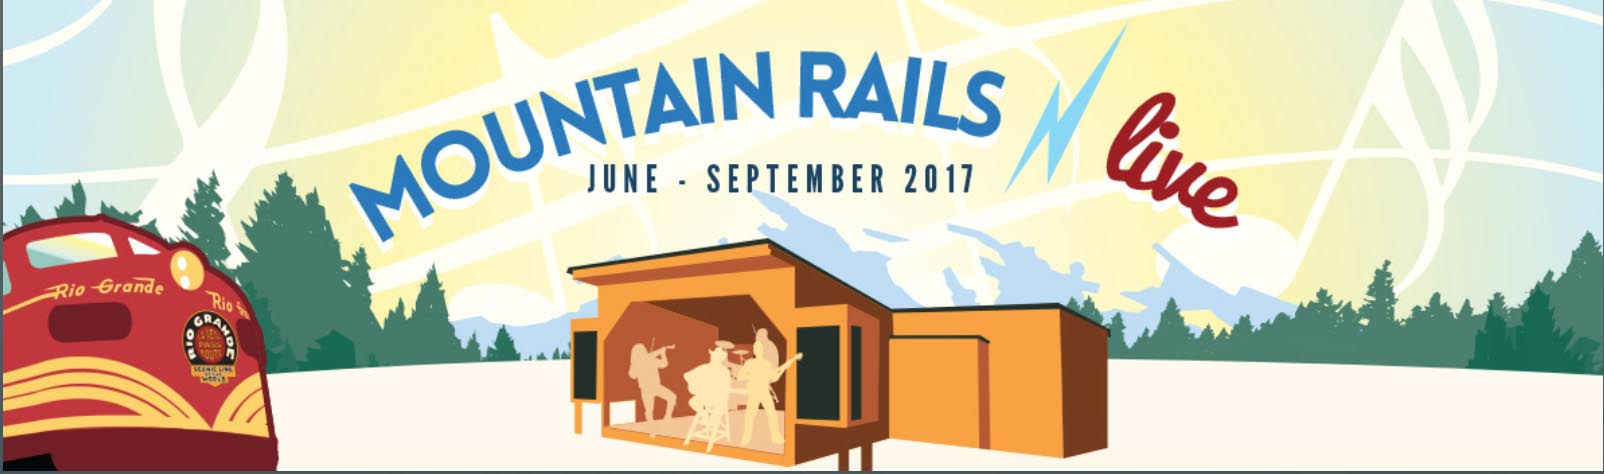 Mountain rails banner